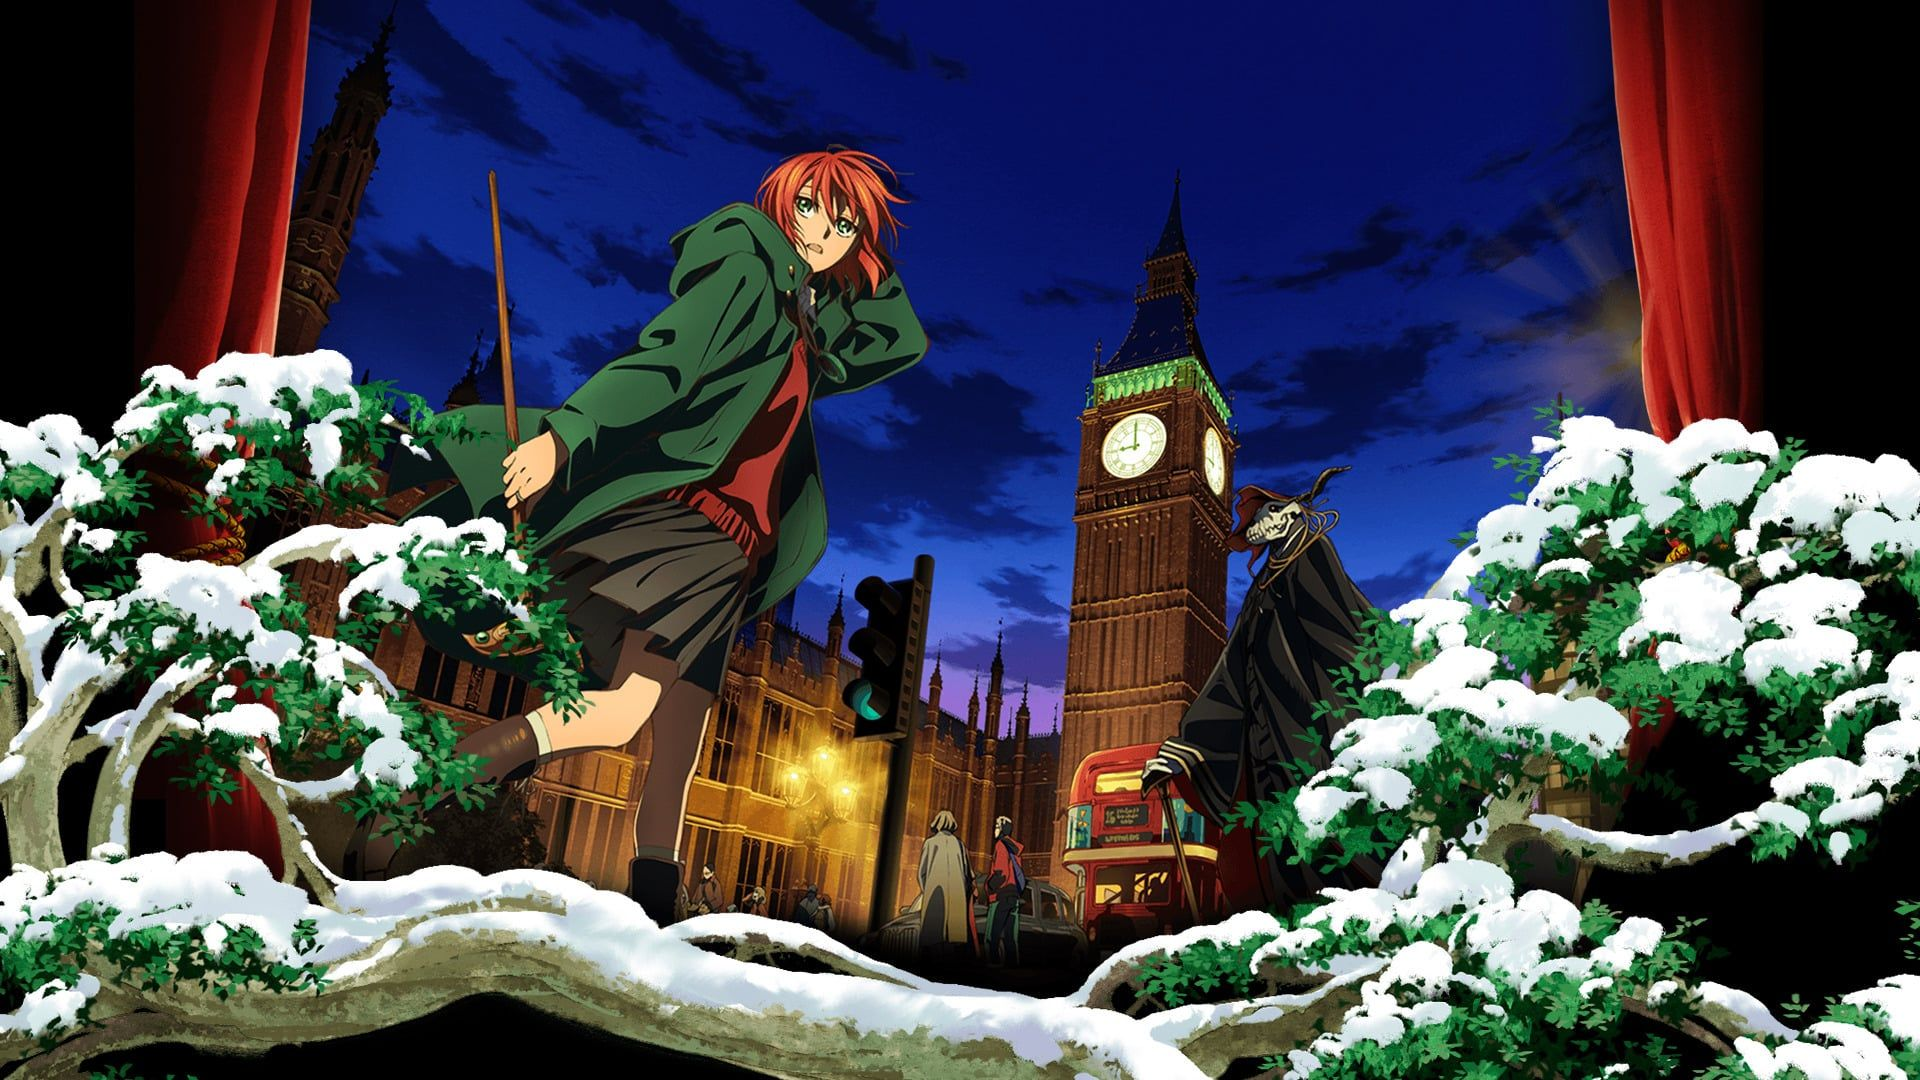 Mahoutsukai no Yome Batch Subtitle Indonesia https//www